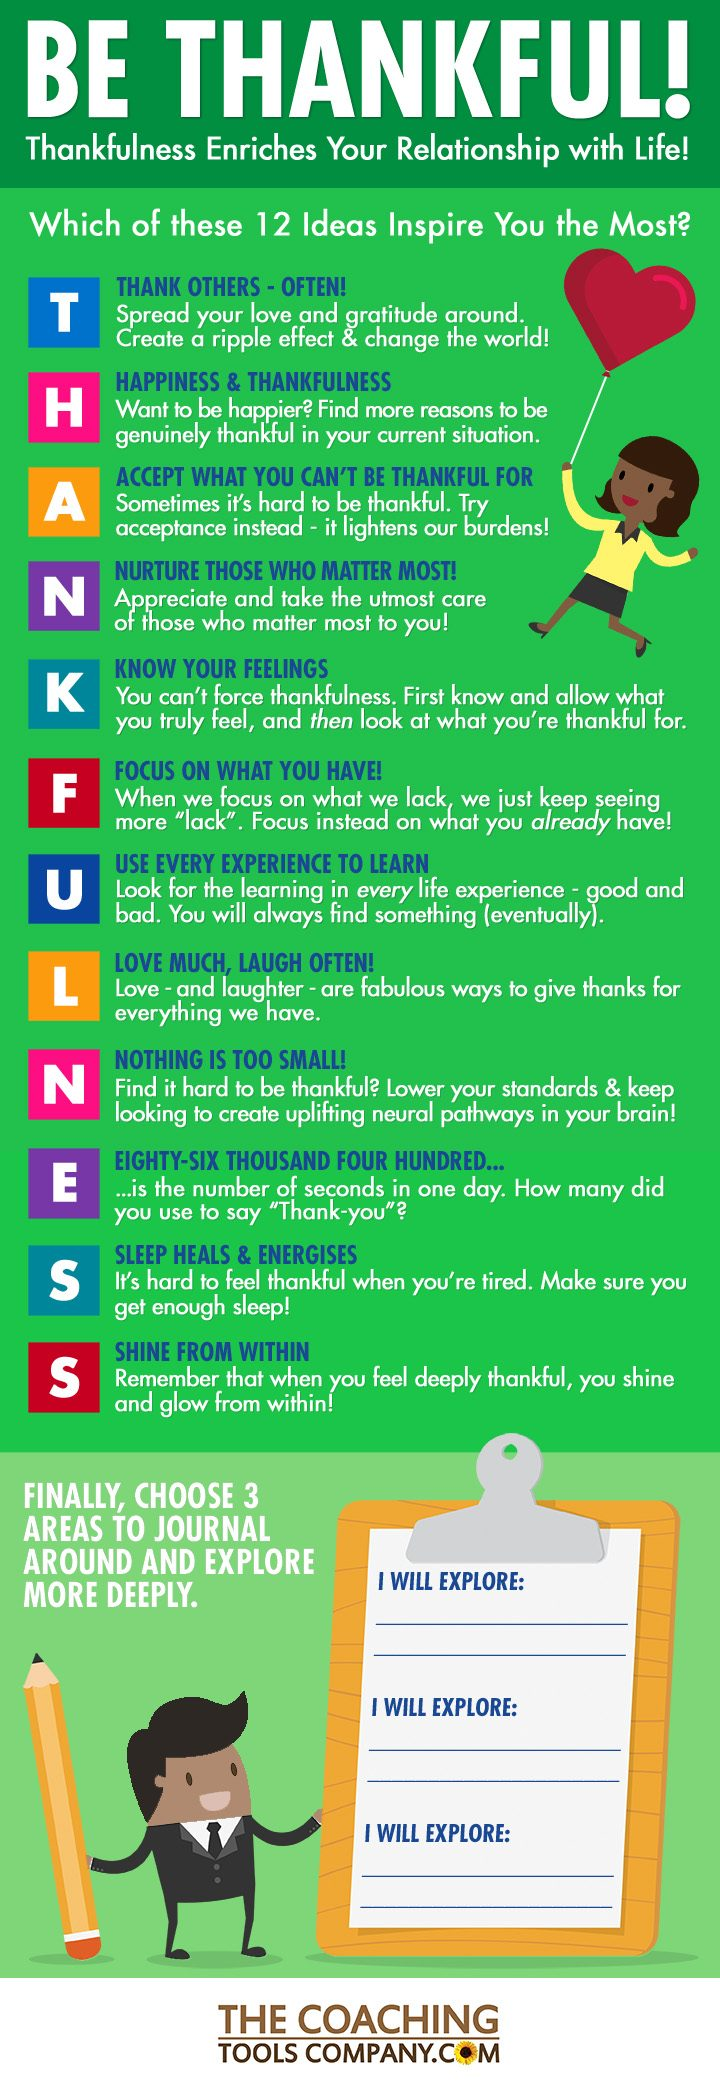 Be Thankful! Infographic